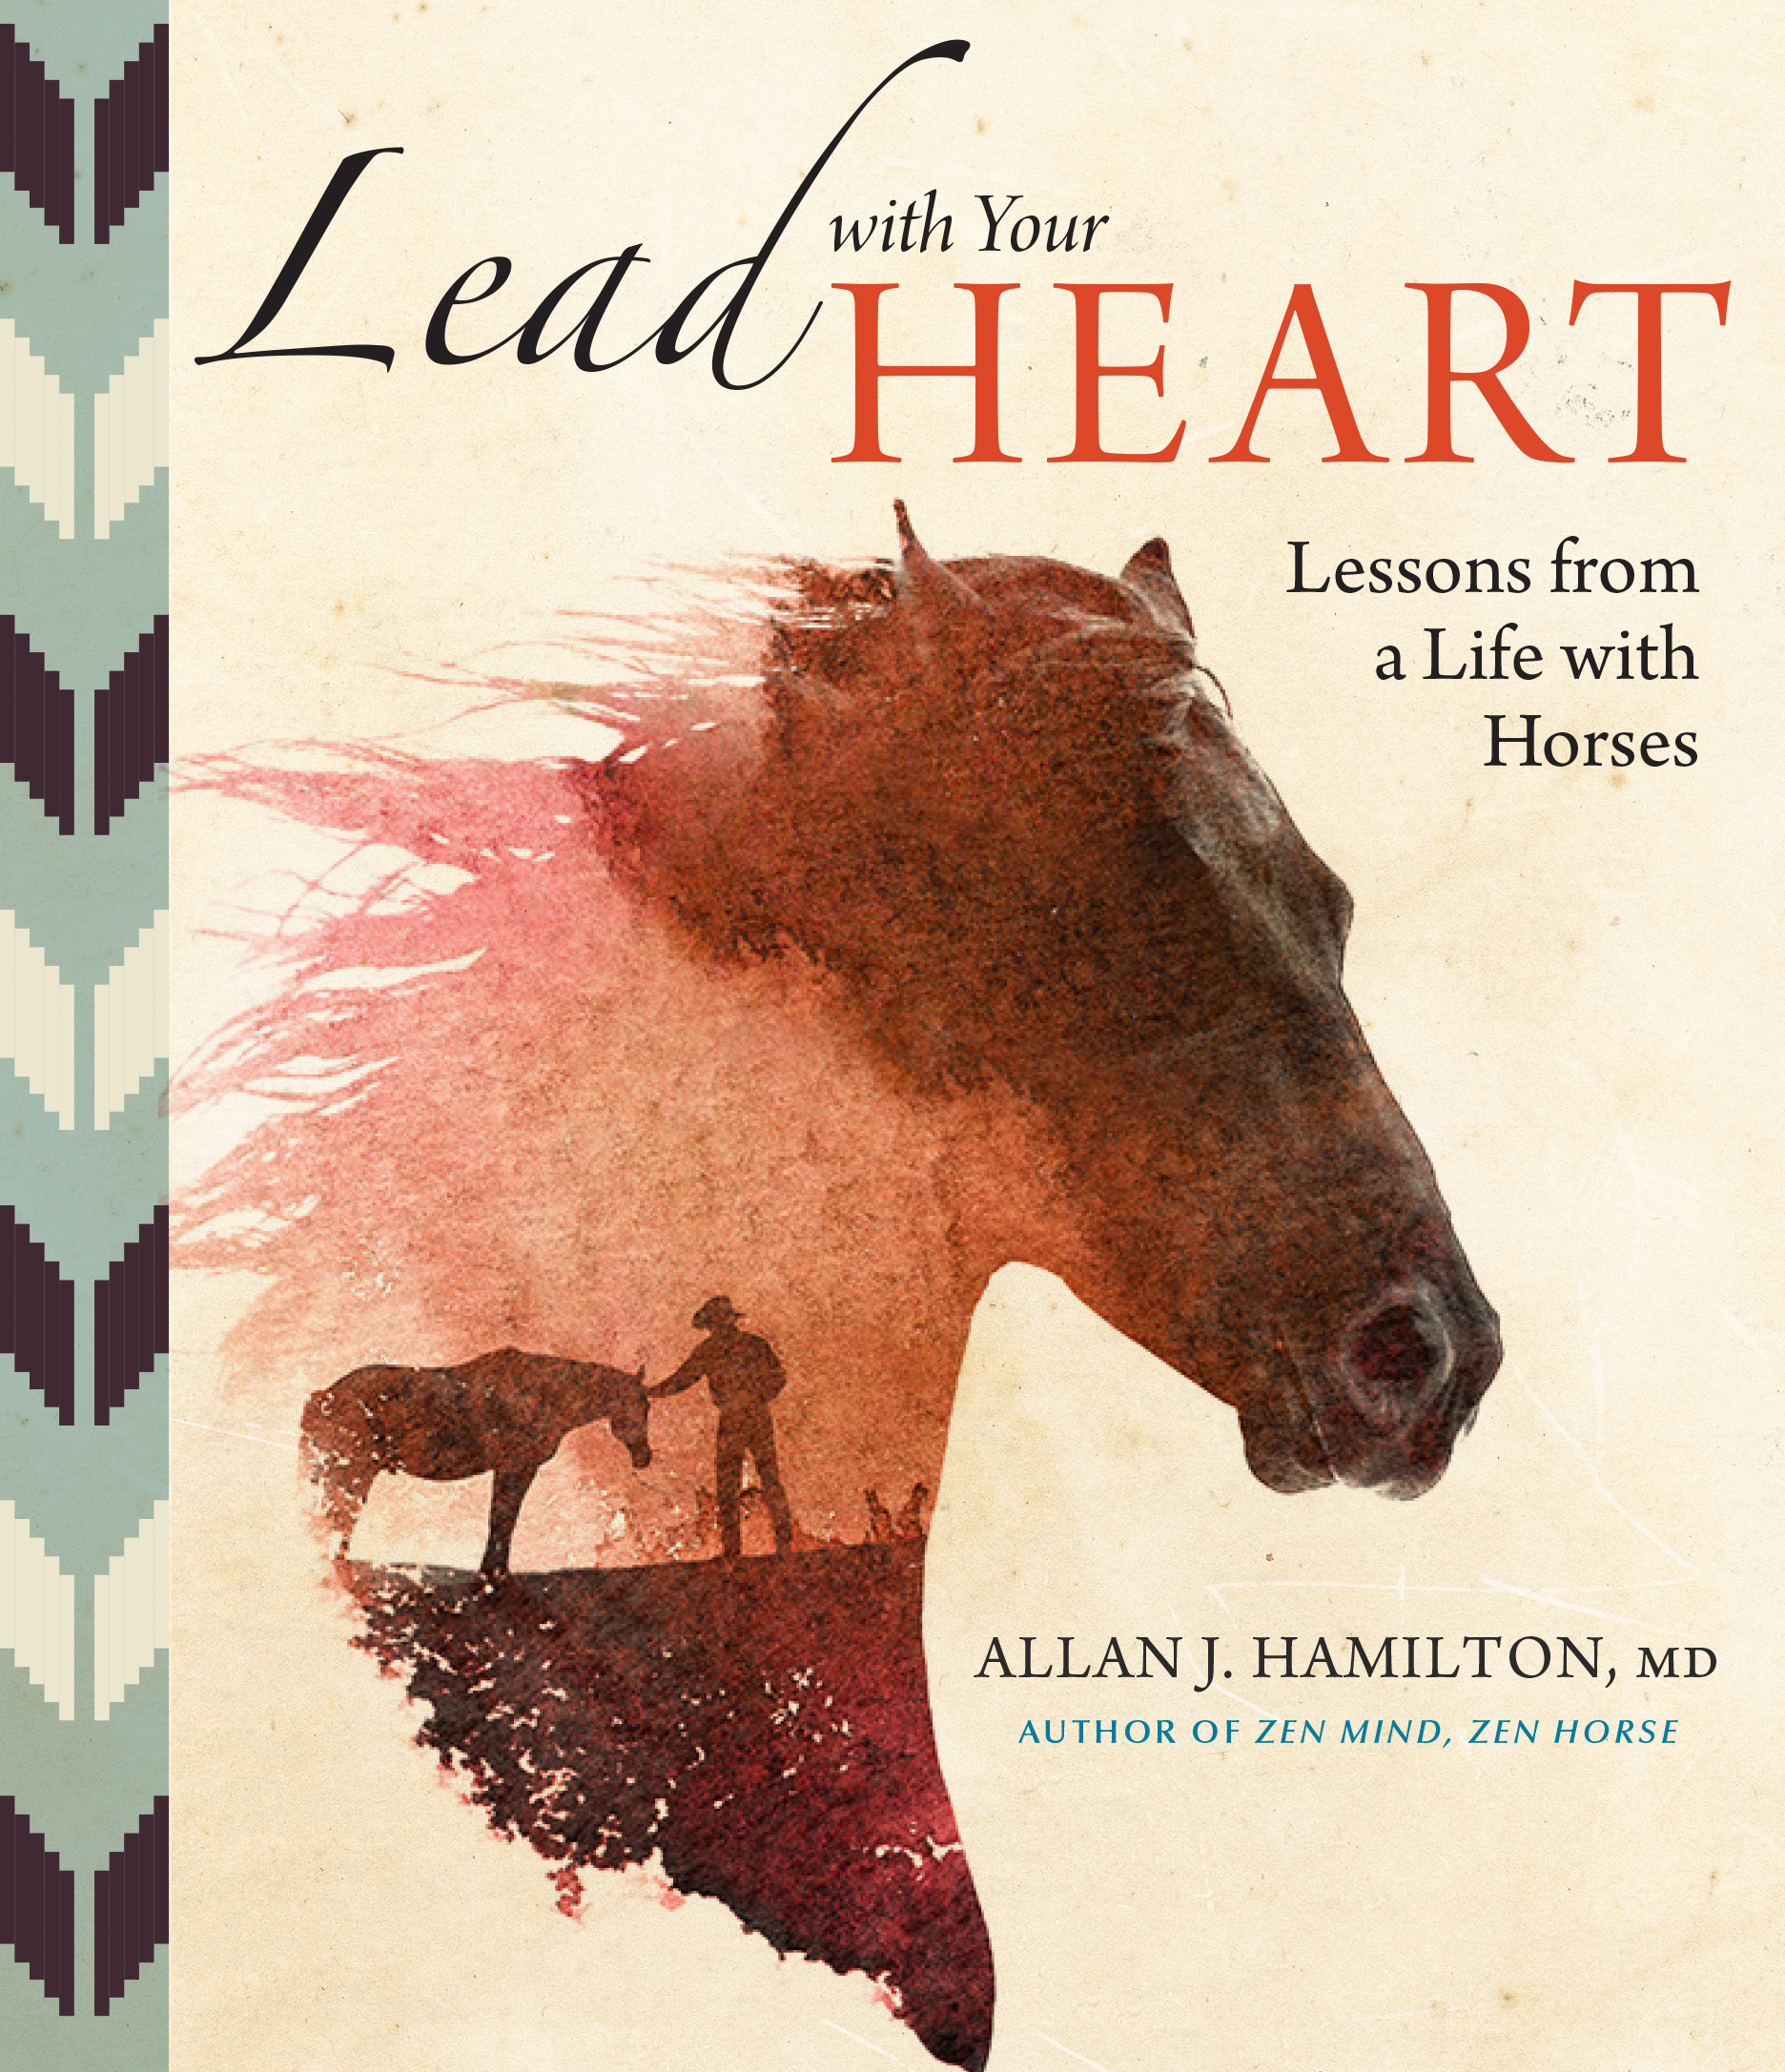 Lead with Your Heart . . . Lessons from a Life with Horses  - Allan J. Hamilton